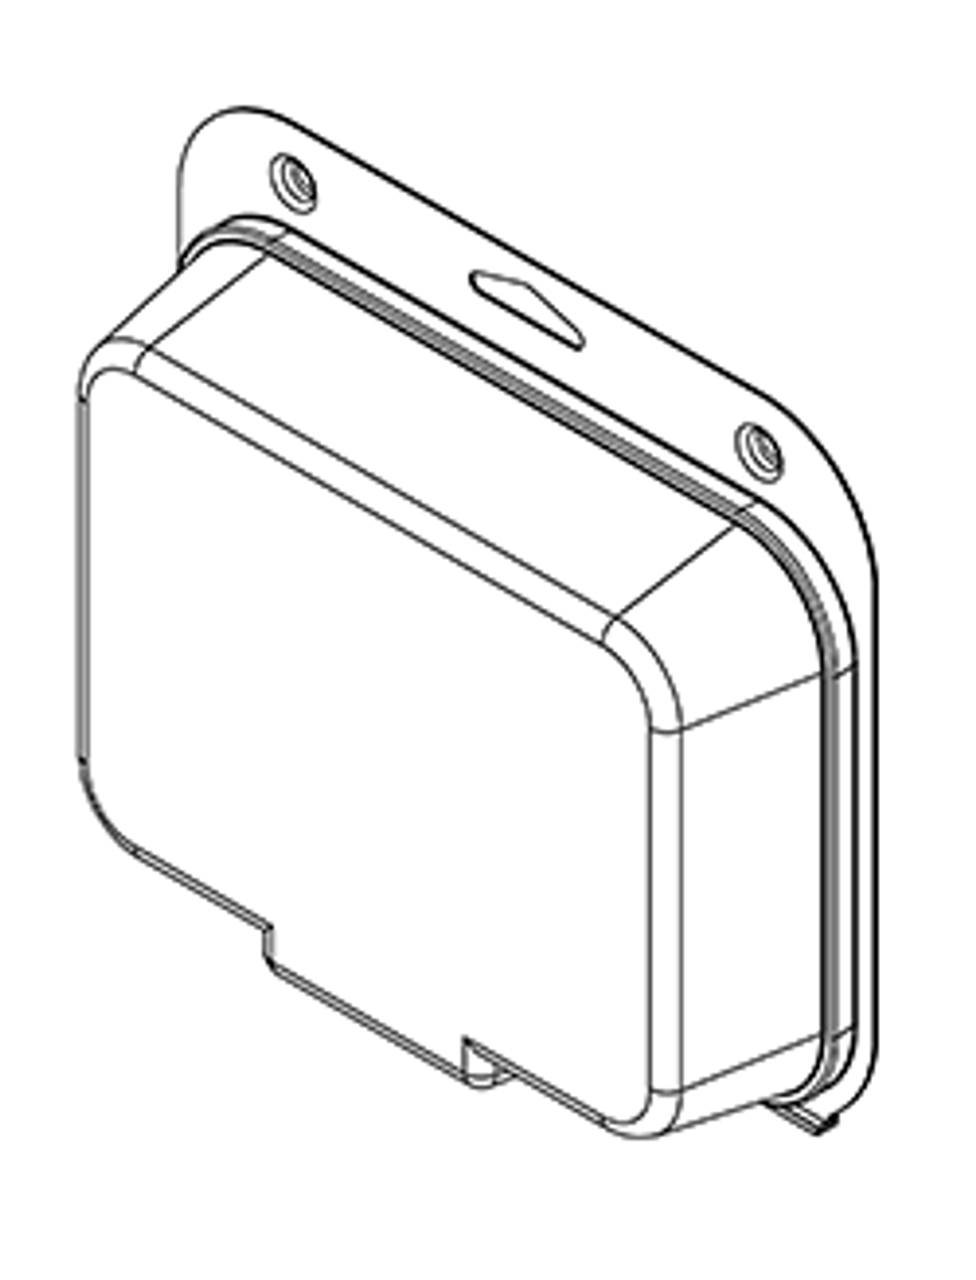 301TF - Stock Clamshell Packaging